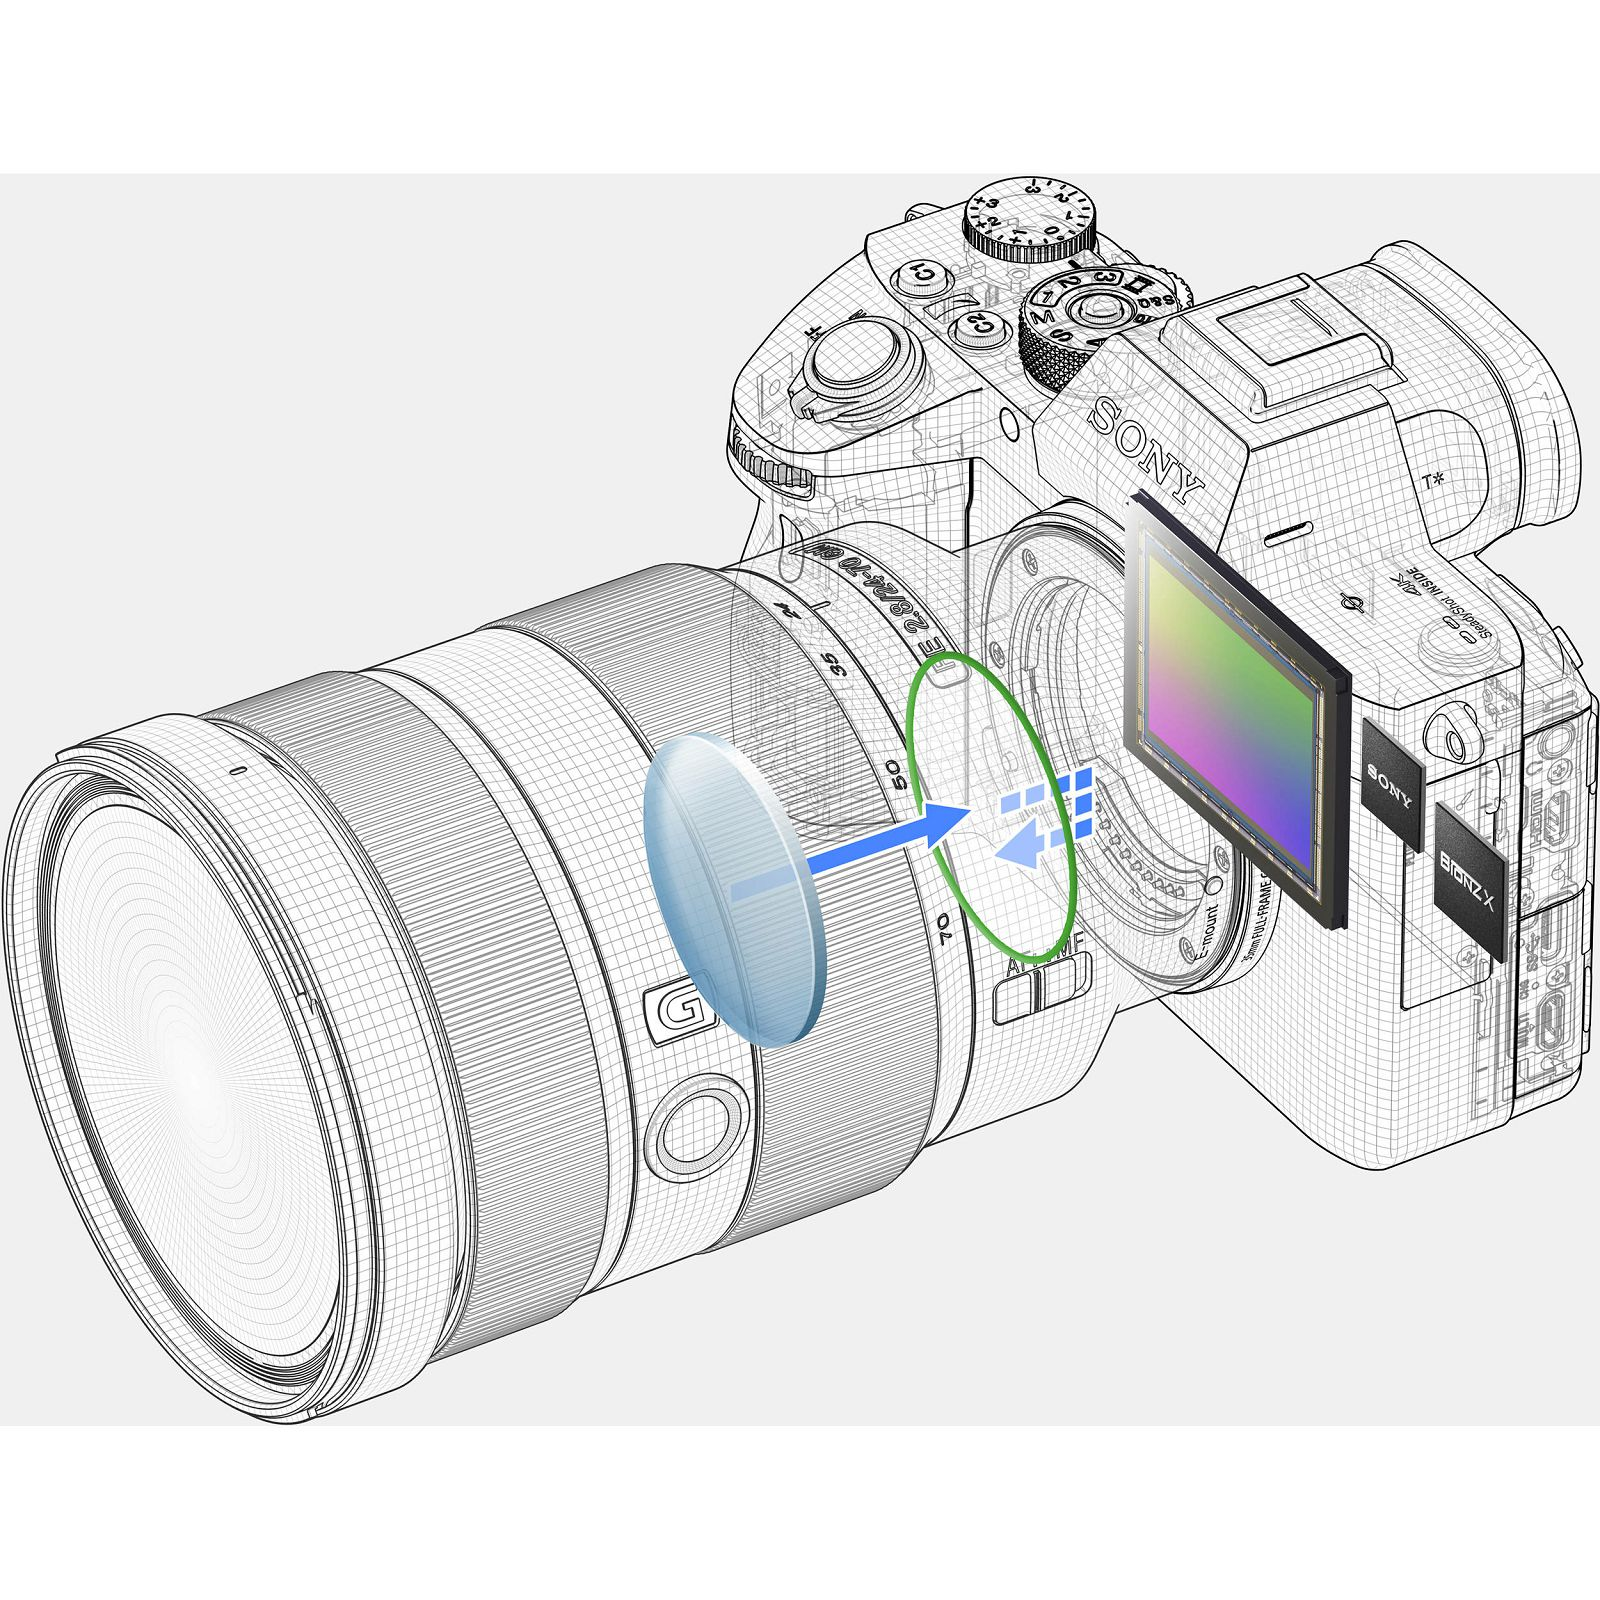 Sony Alpha A7r Iii Body Mirrorless Digitalni Fotoaparat Tijelo Full Megapixel 360 Degree Camera Block Diagram Digital Bezrcalni Frame A7riii Mk